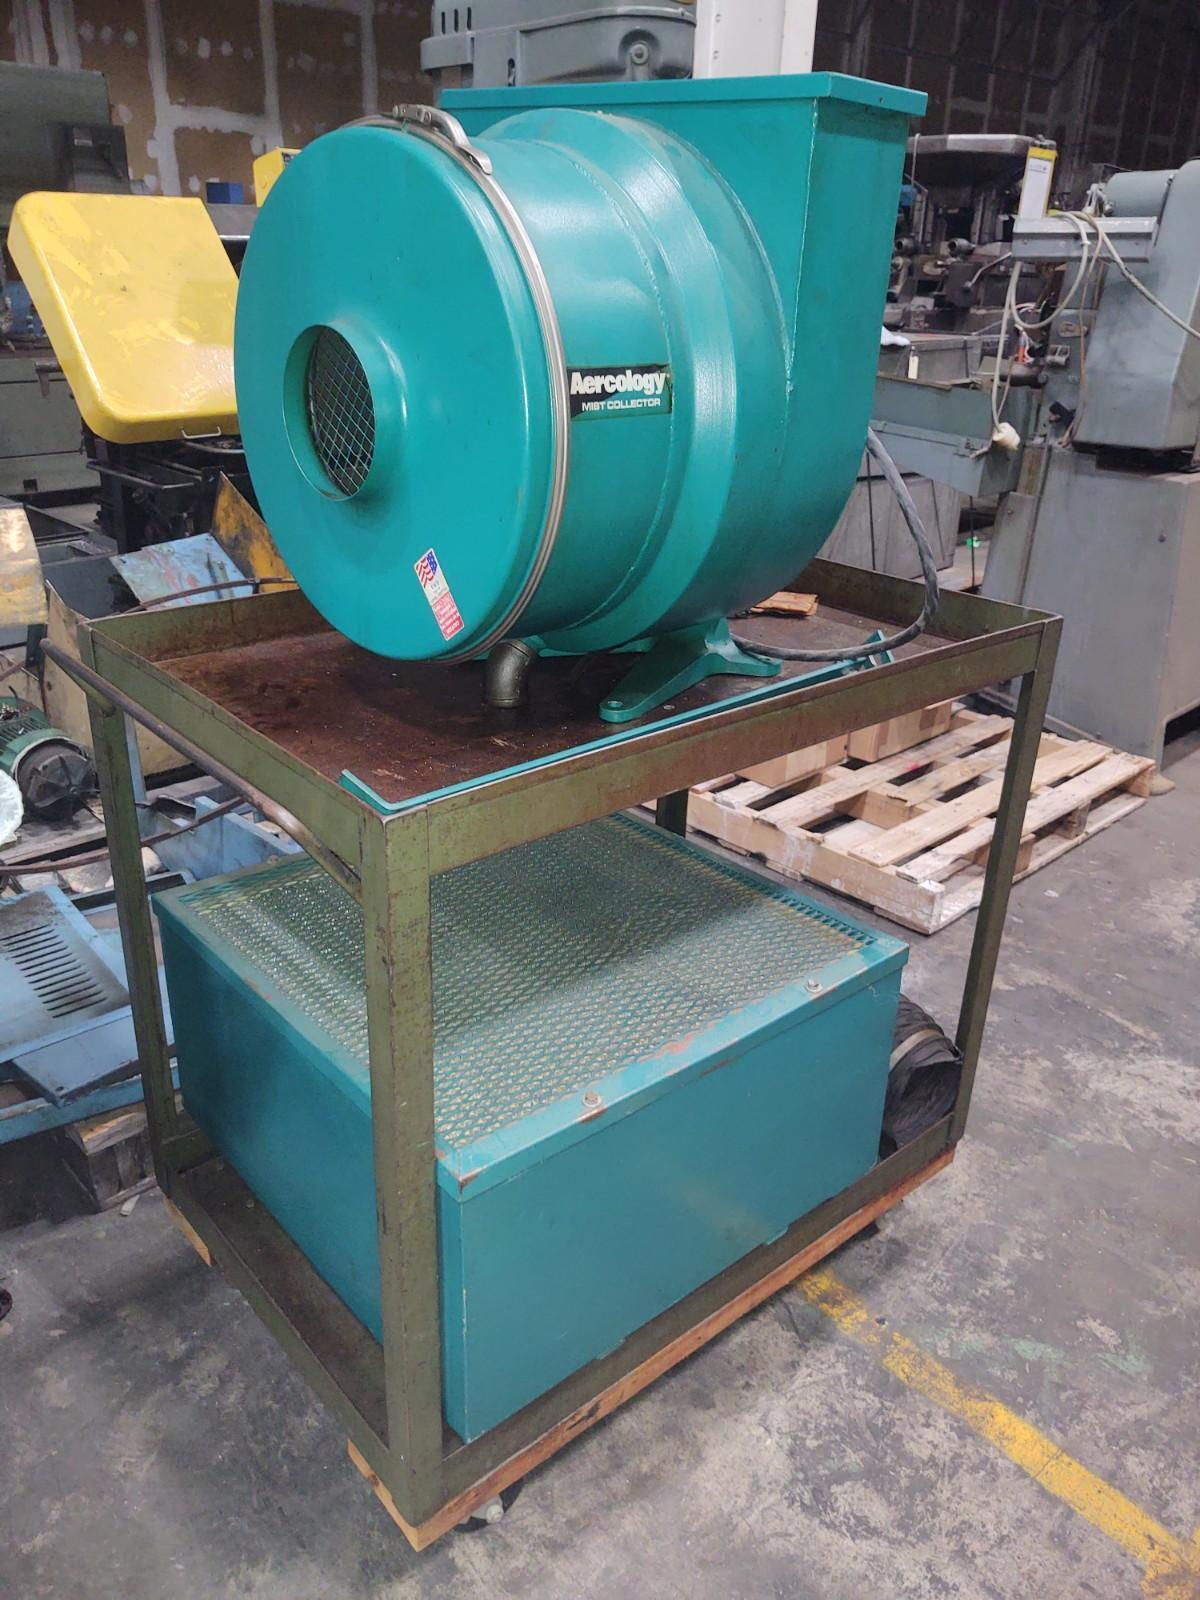 Aercology Air Cleaner Model EA 700